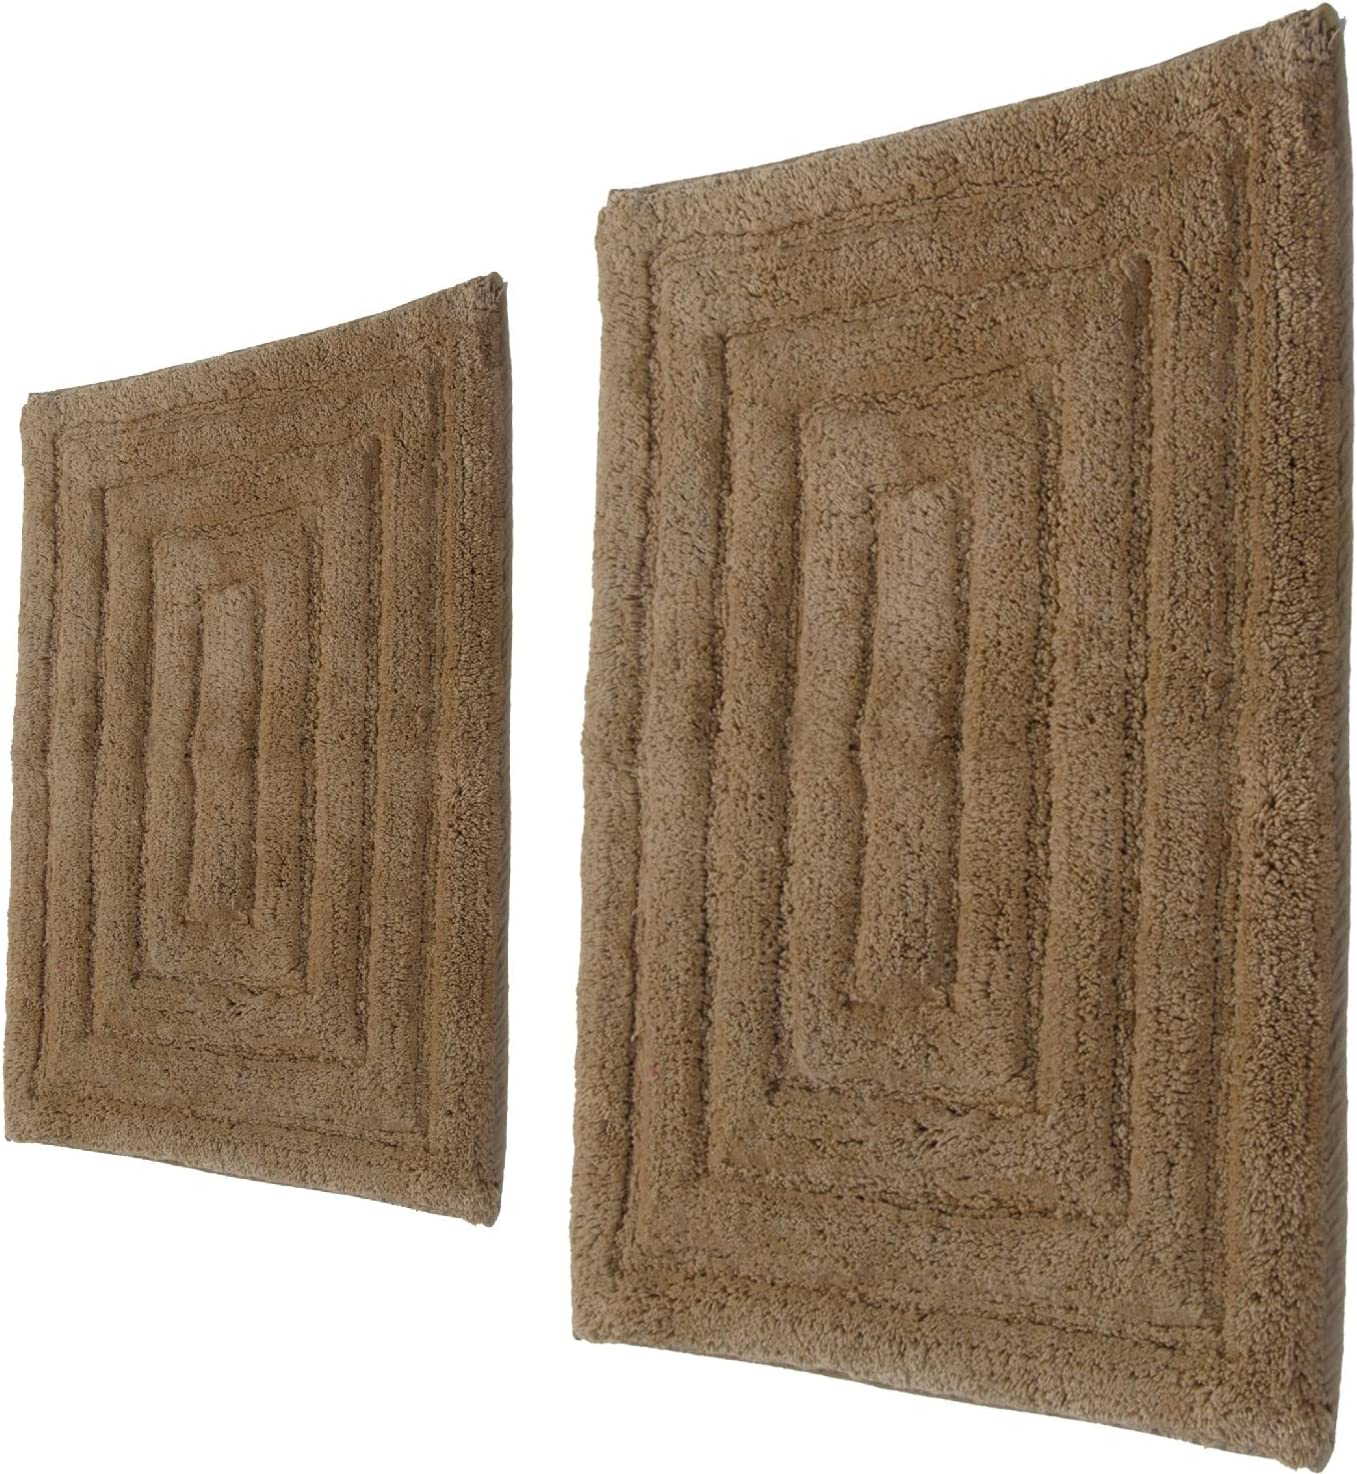 Castle Hill 2-Piece 100-Percent Cotton Racetrack Bath Rug, Taupe, 17x24/20x30